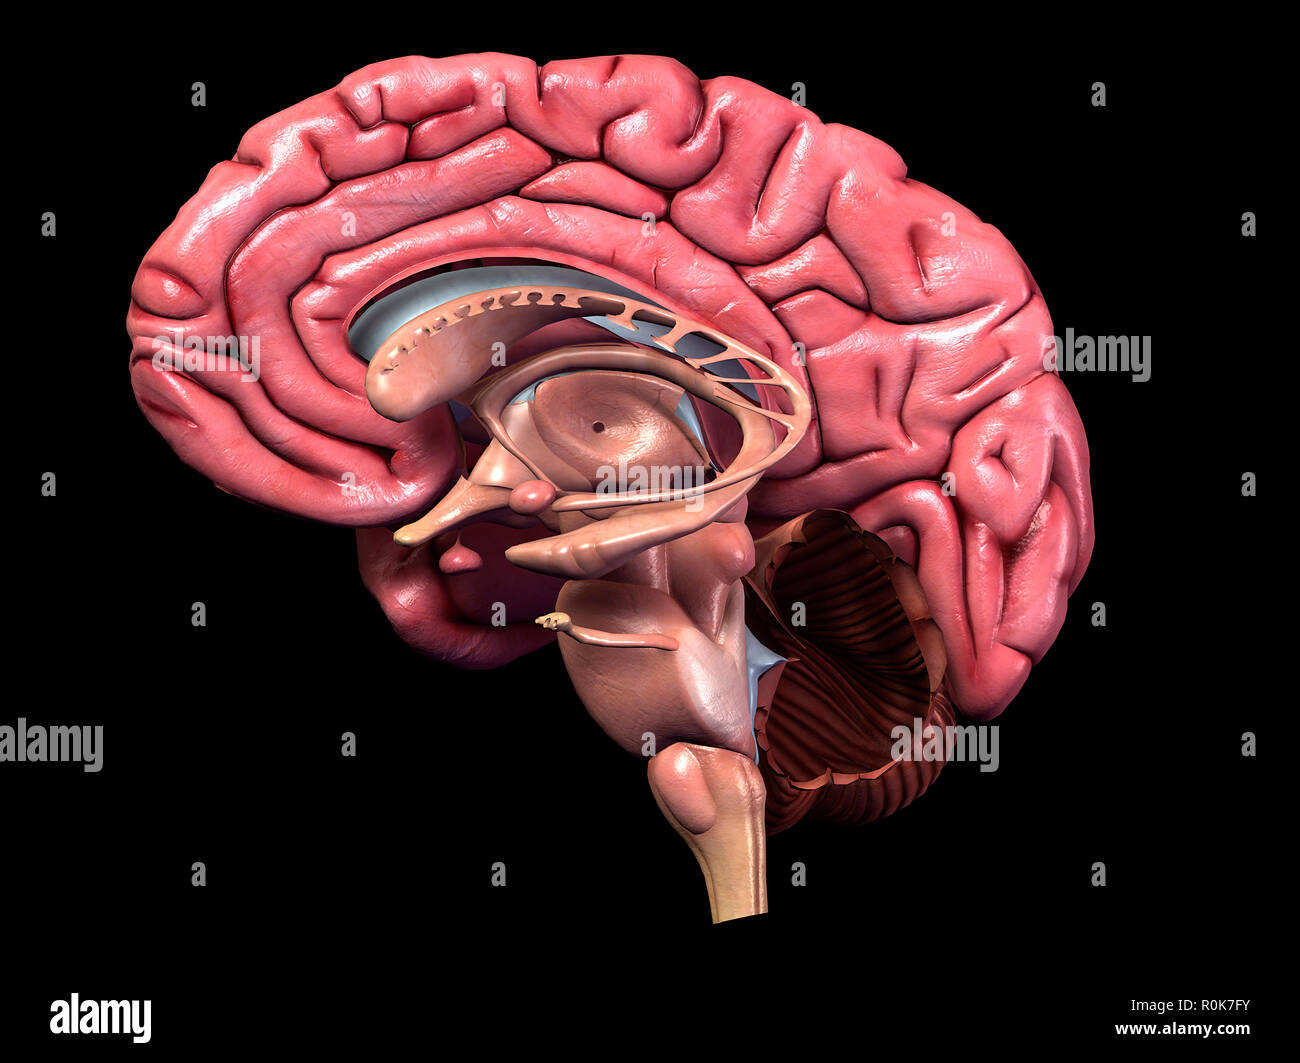 Human brain, sagittal section. - Stock Image